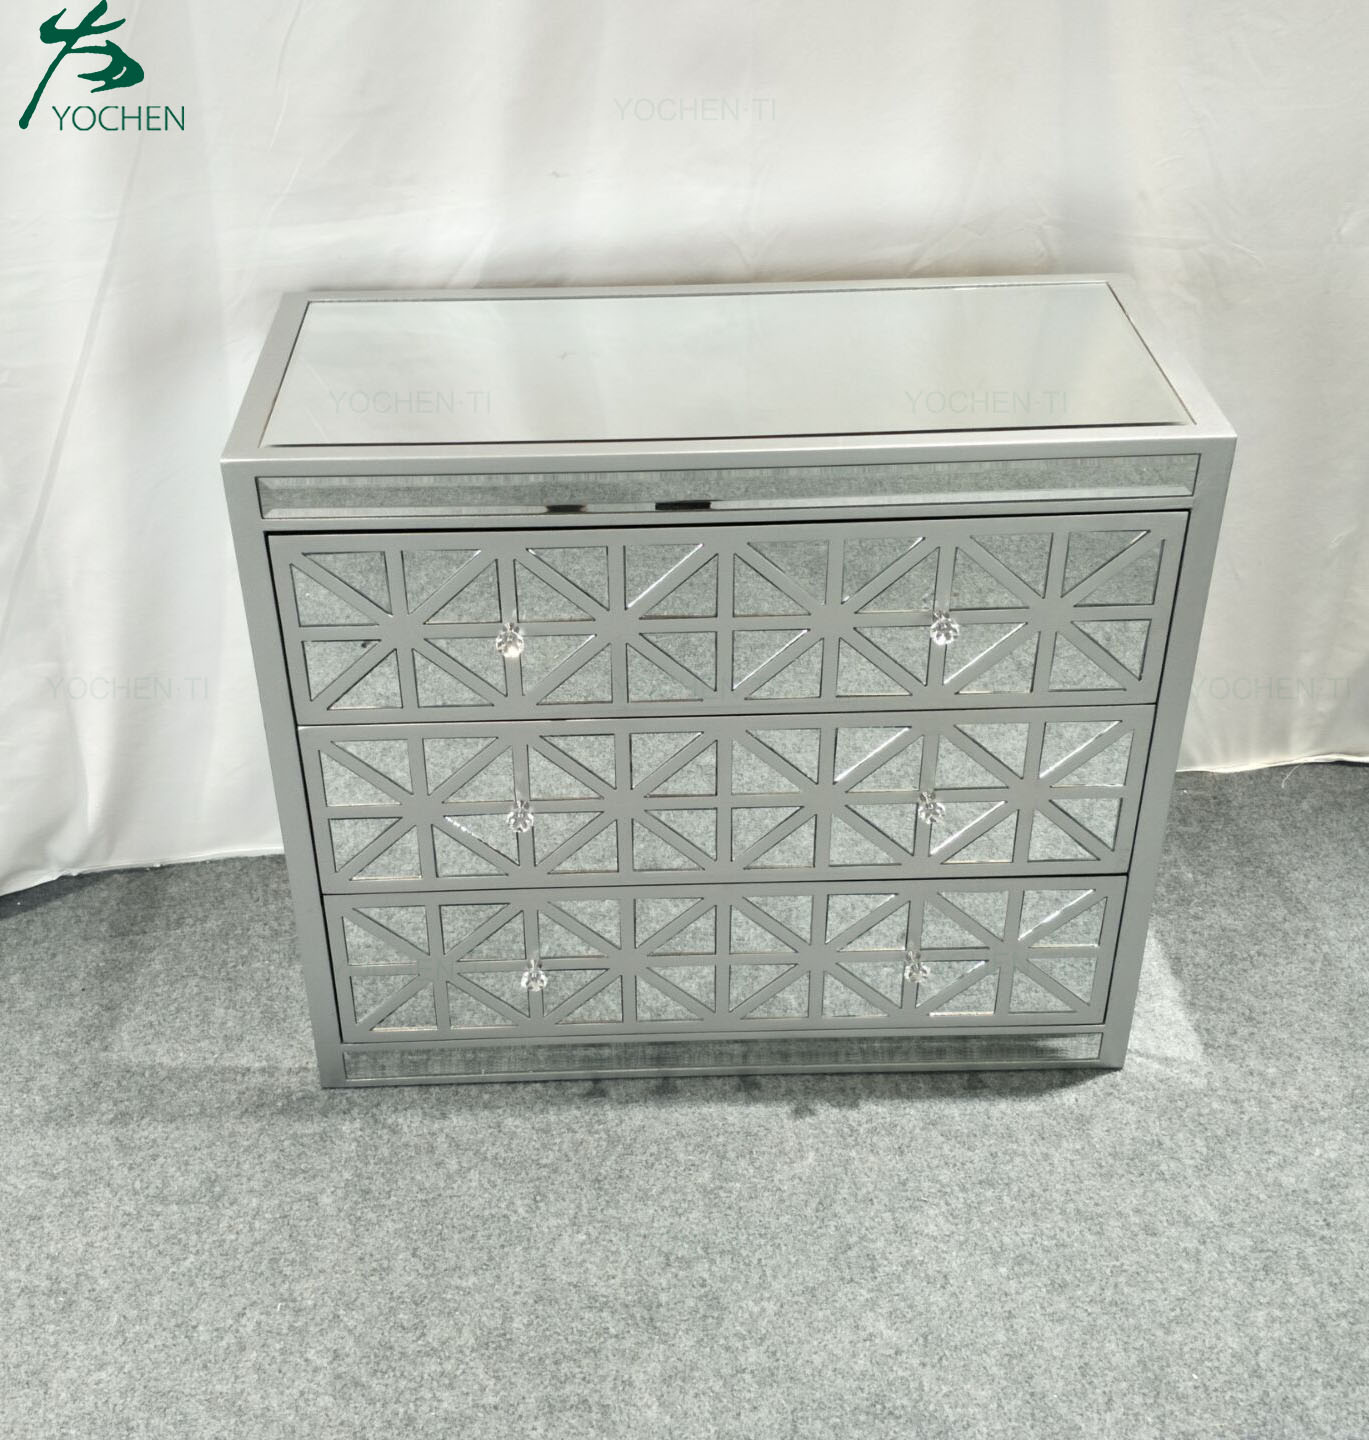 Mirrored furniture 5 Drawers Tallboy Chest of Drawers Storage Cabinet